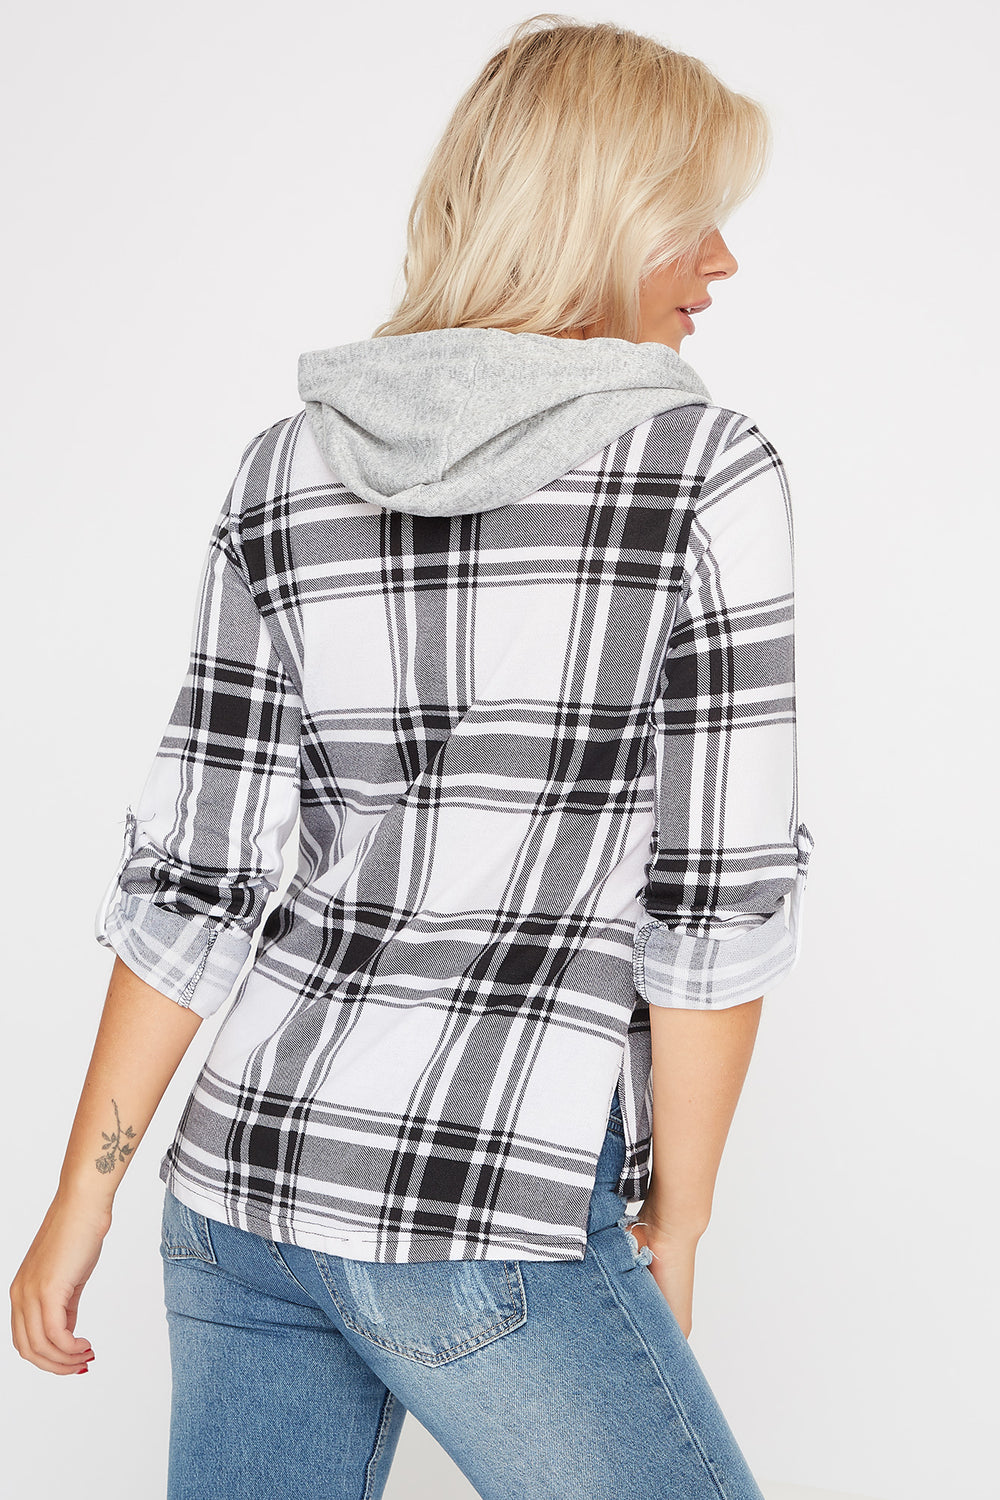 Plaid Hooded Button-Up Shirt Black with White